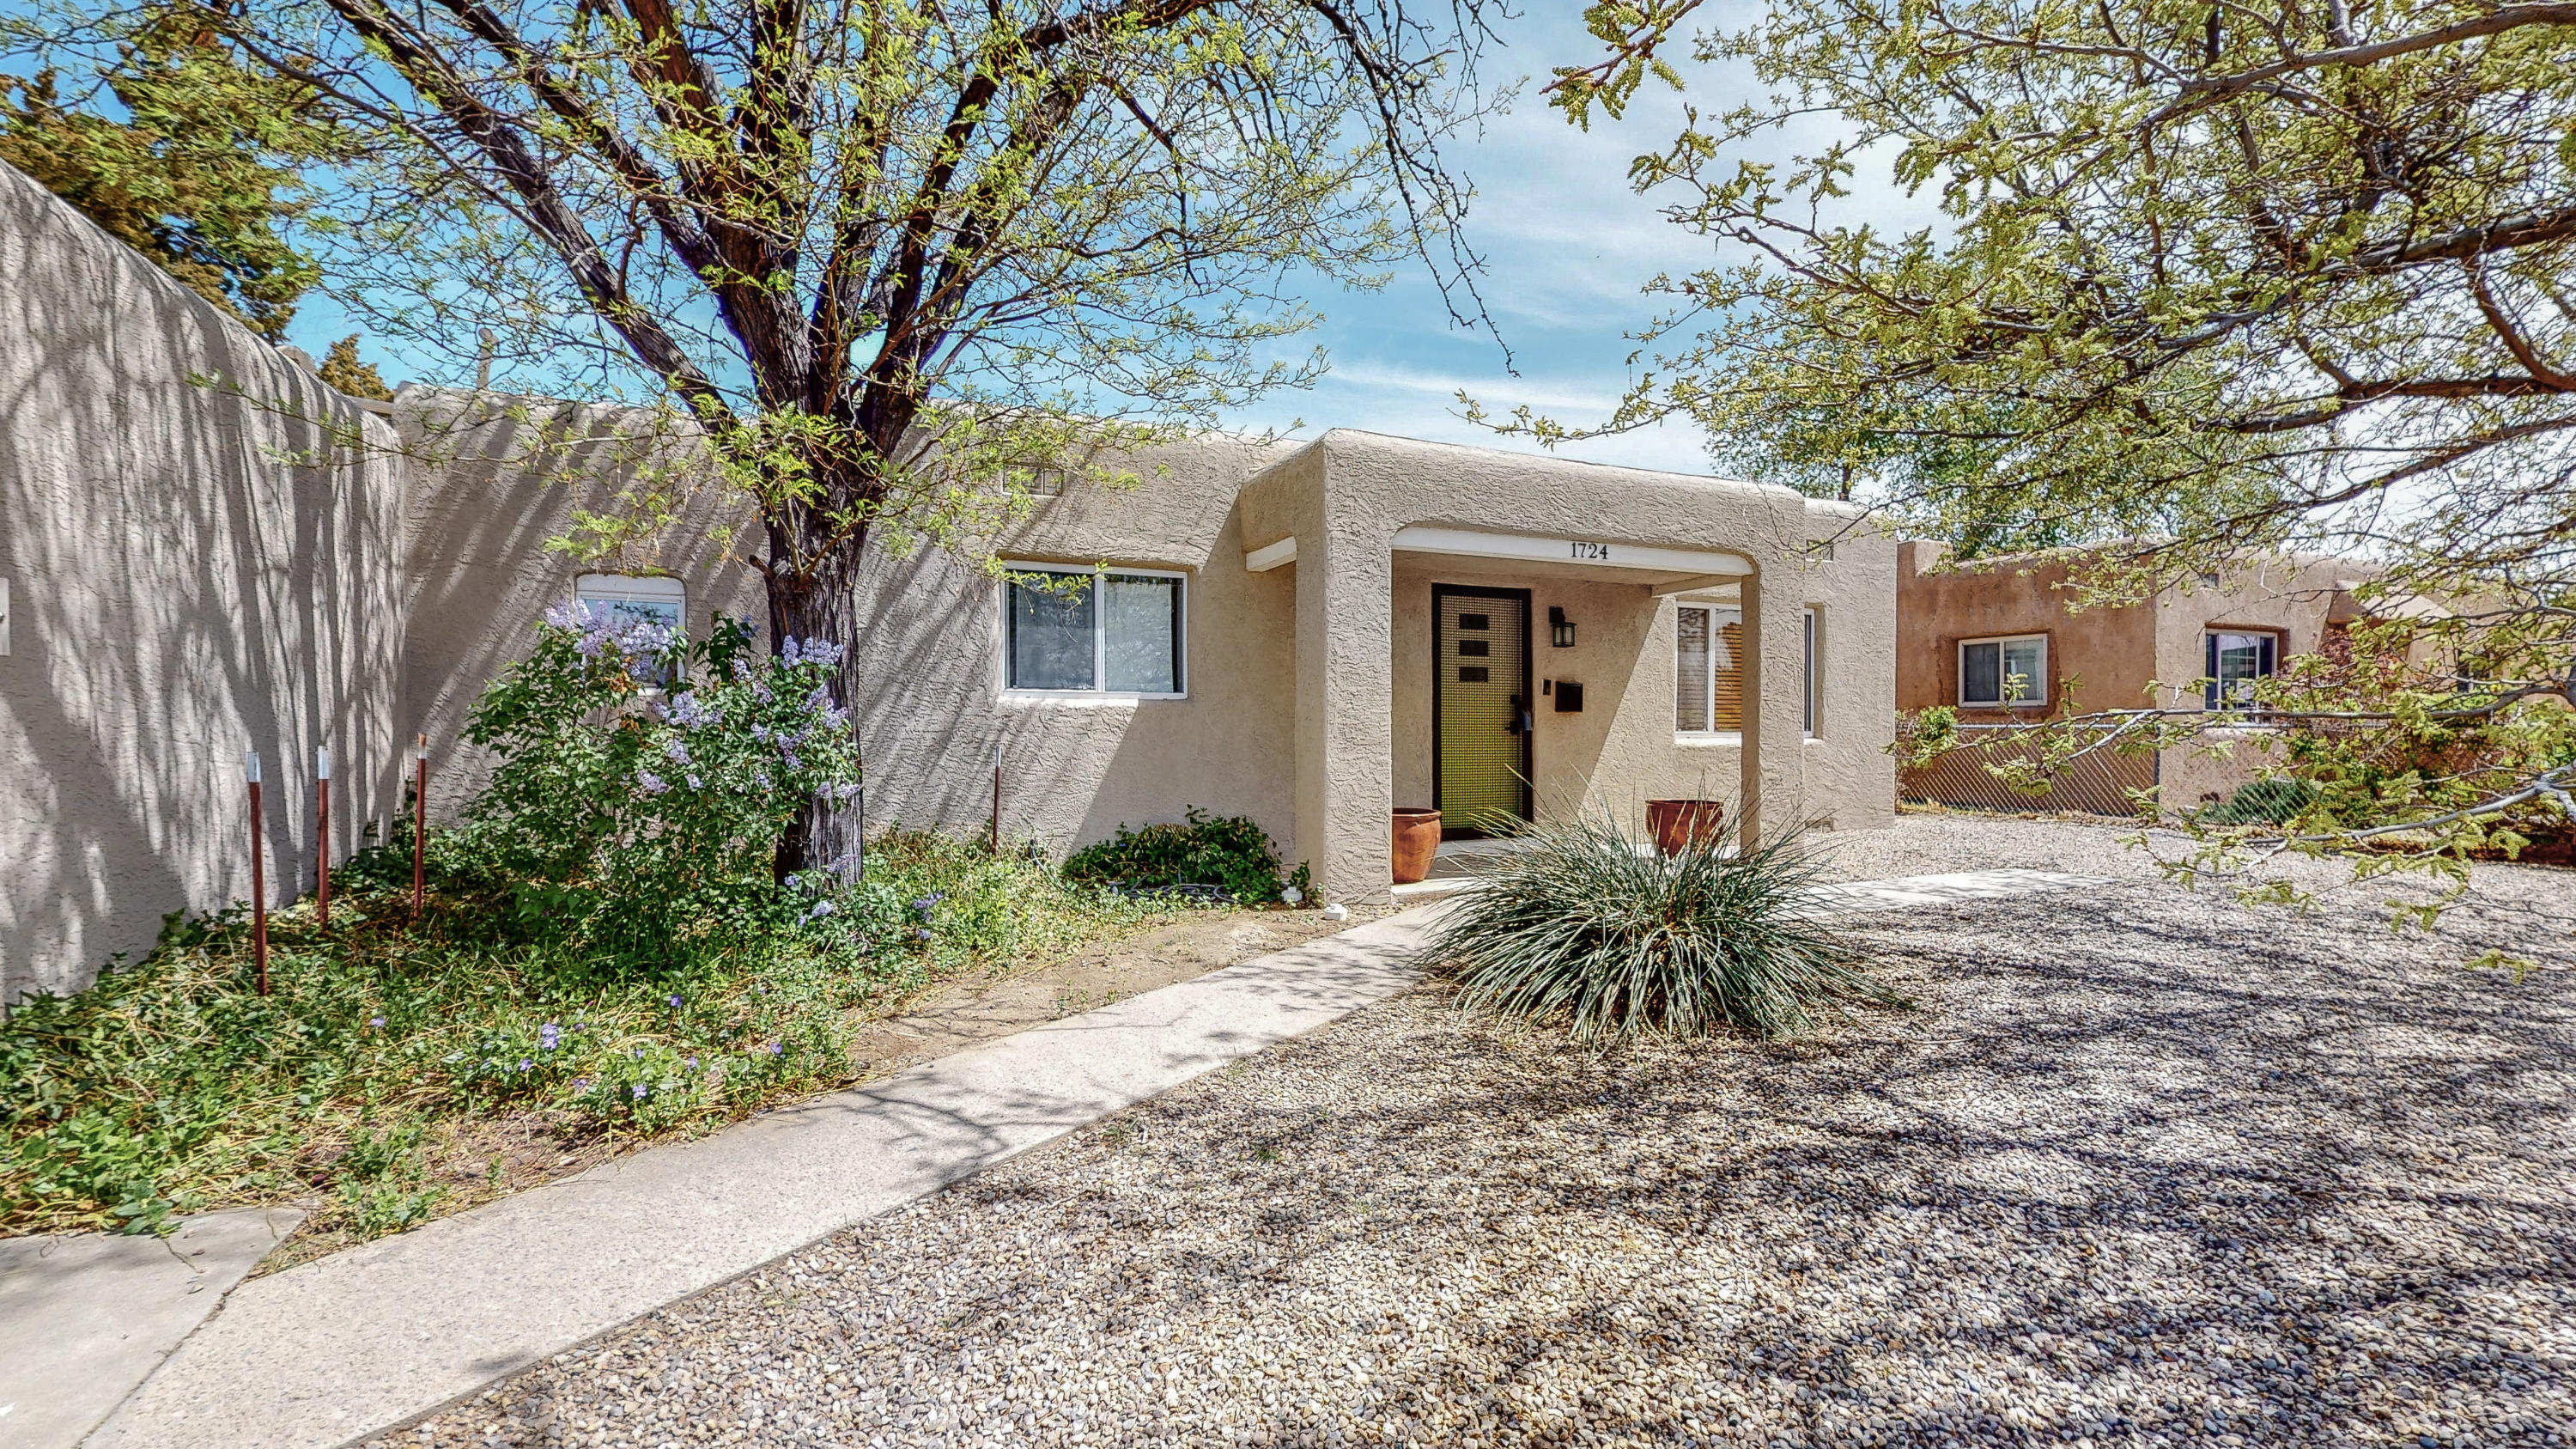 Welcome to this fantastically remodeled home! This gorgeous home lives like new construction and features a fabulously landscaped backyard. This great home was lovingly cared for and won't be available for long! Call today to make this home yours!